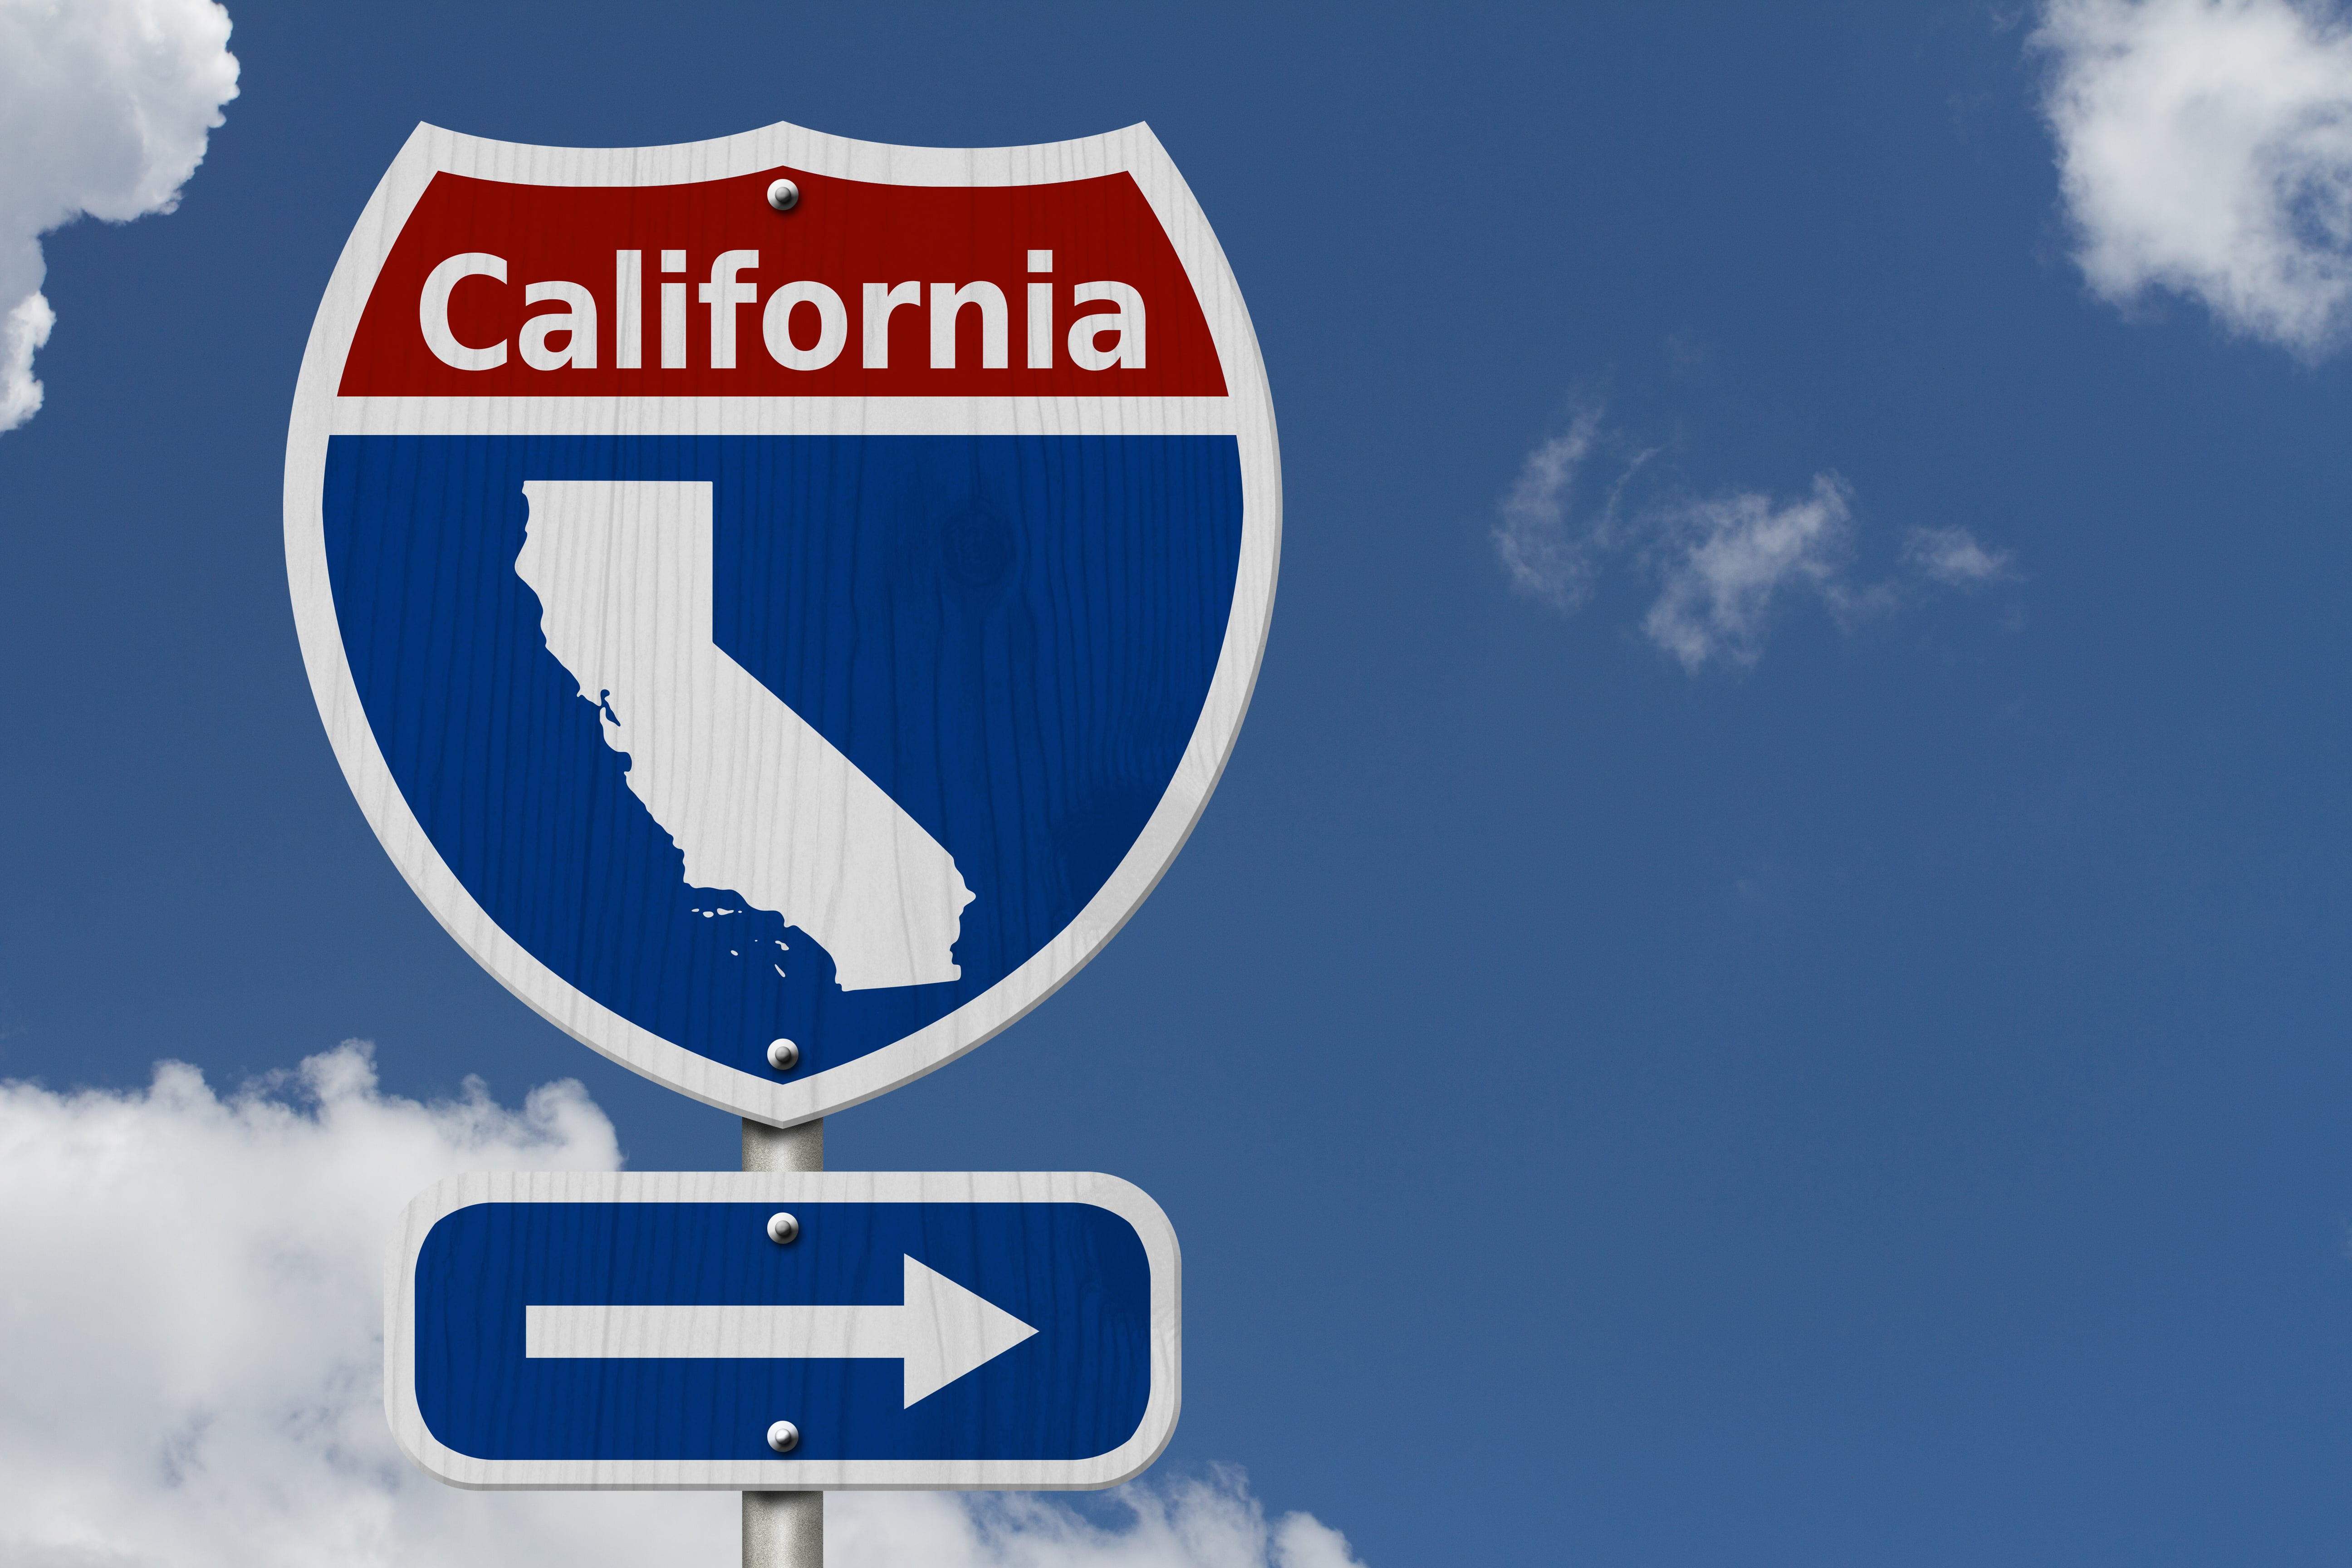 State of California traffic sign